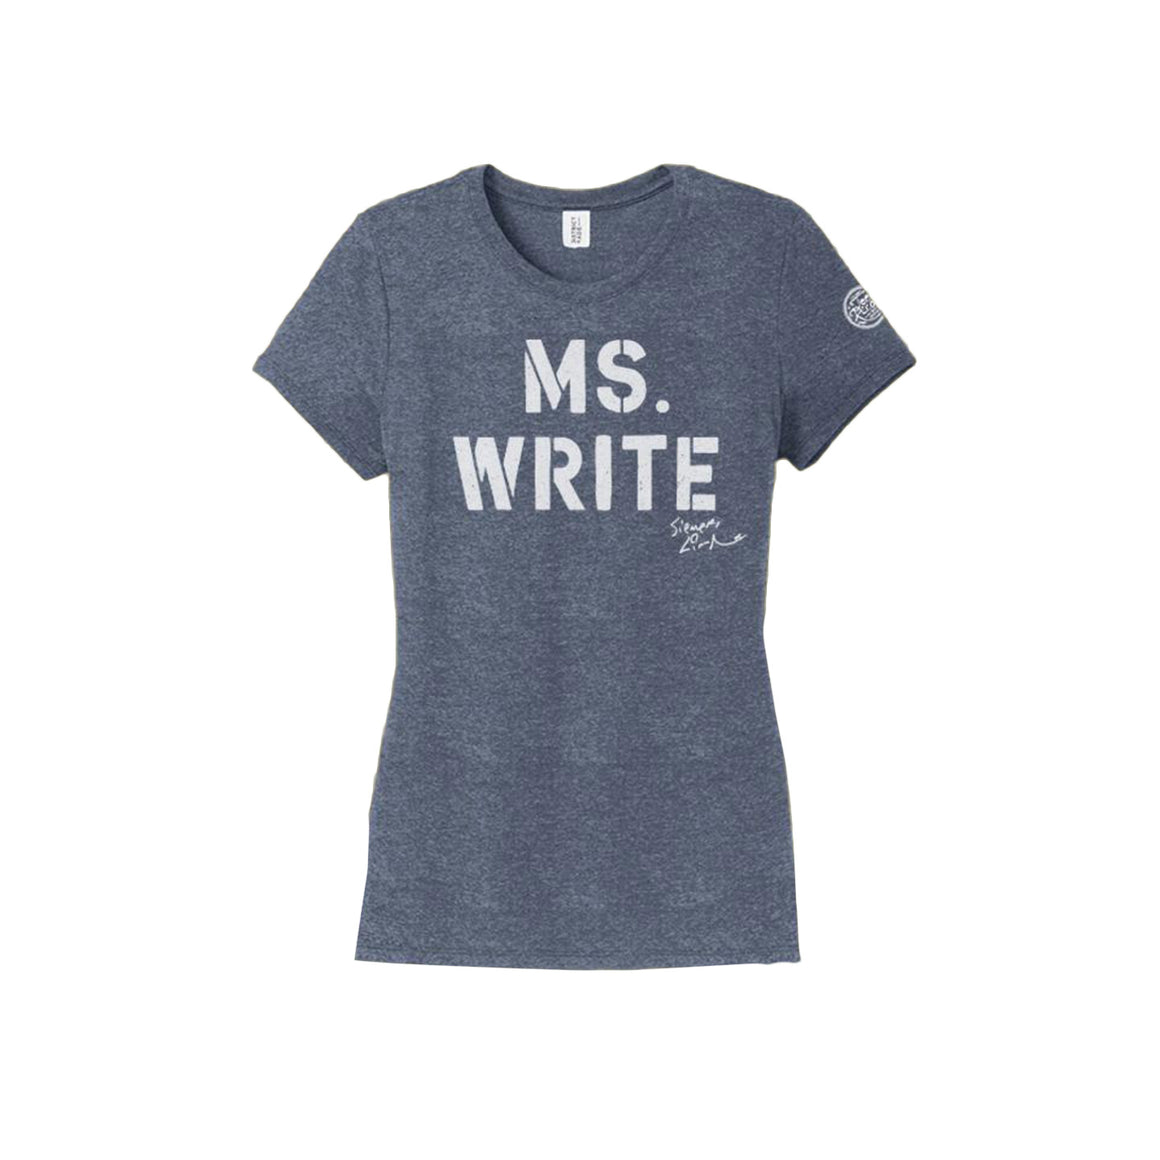 MS. WRITE - Ladies Crew